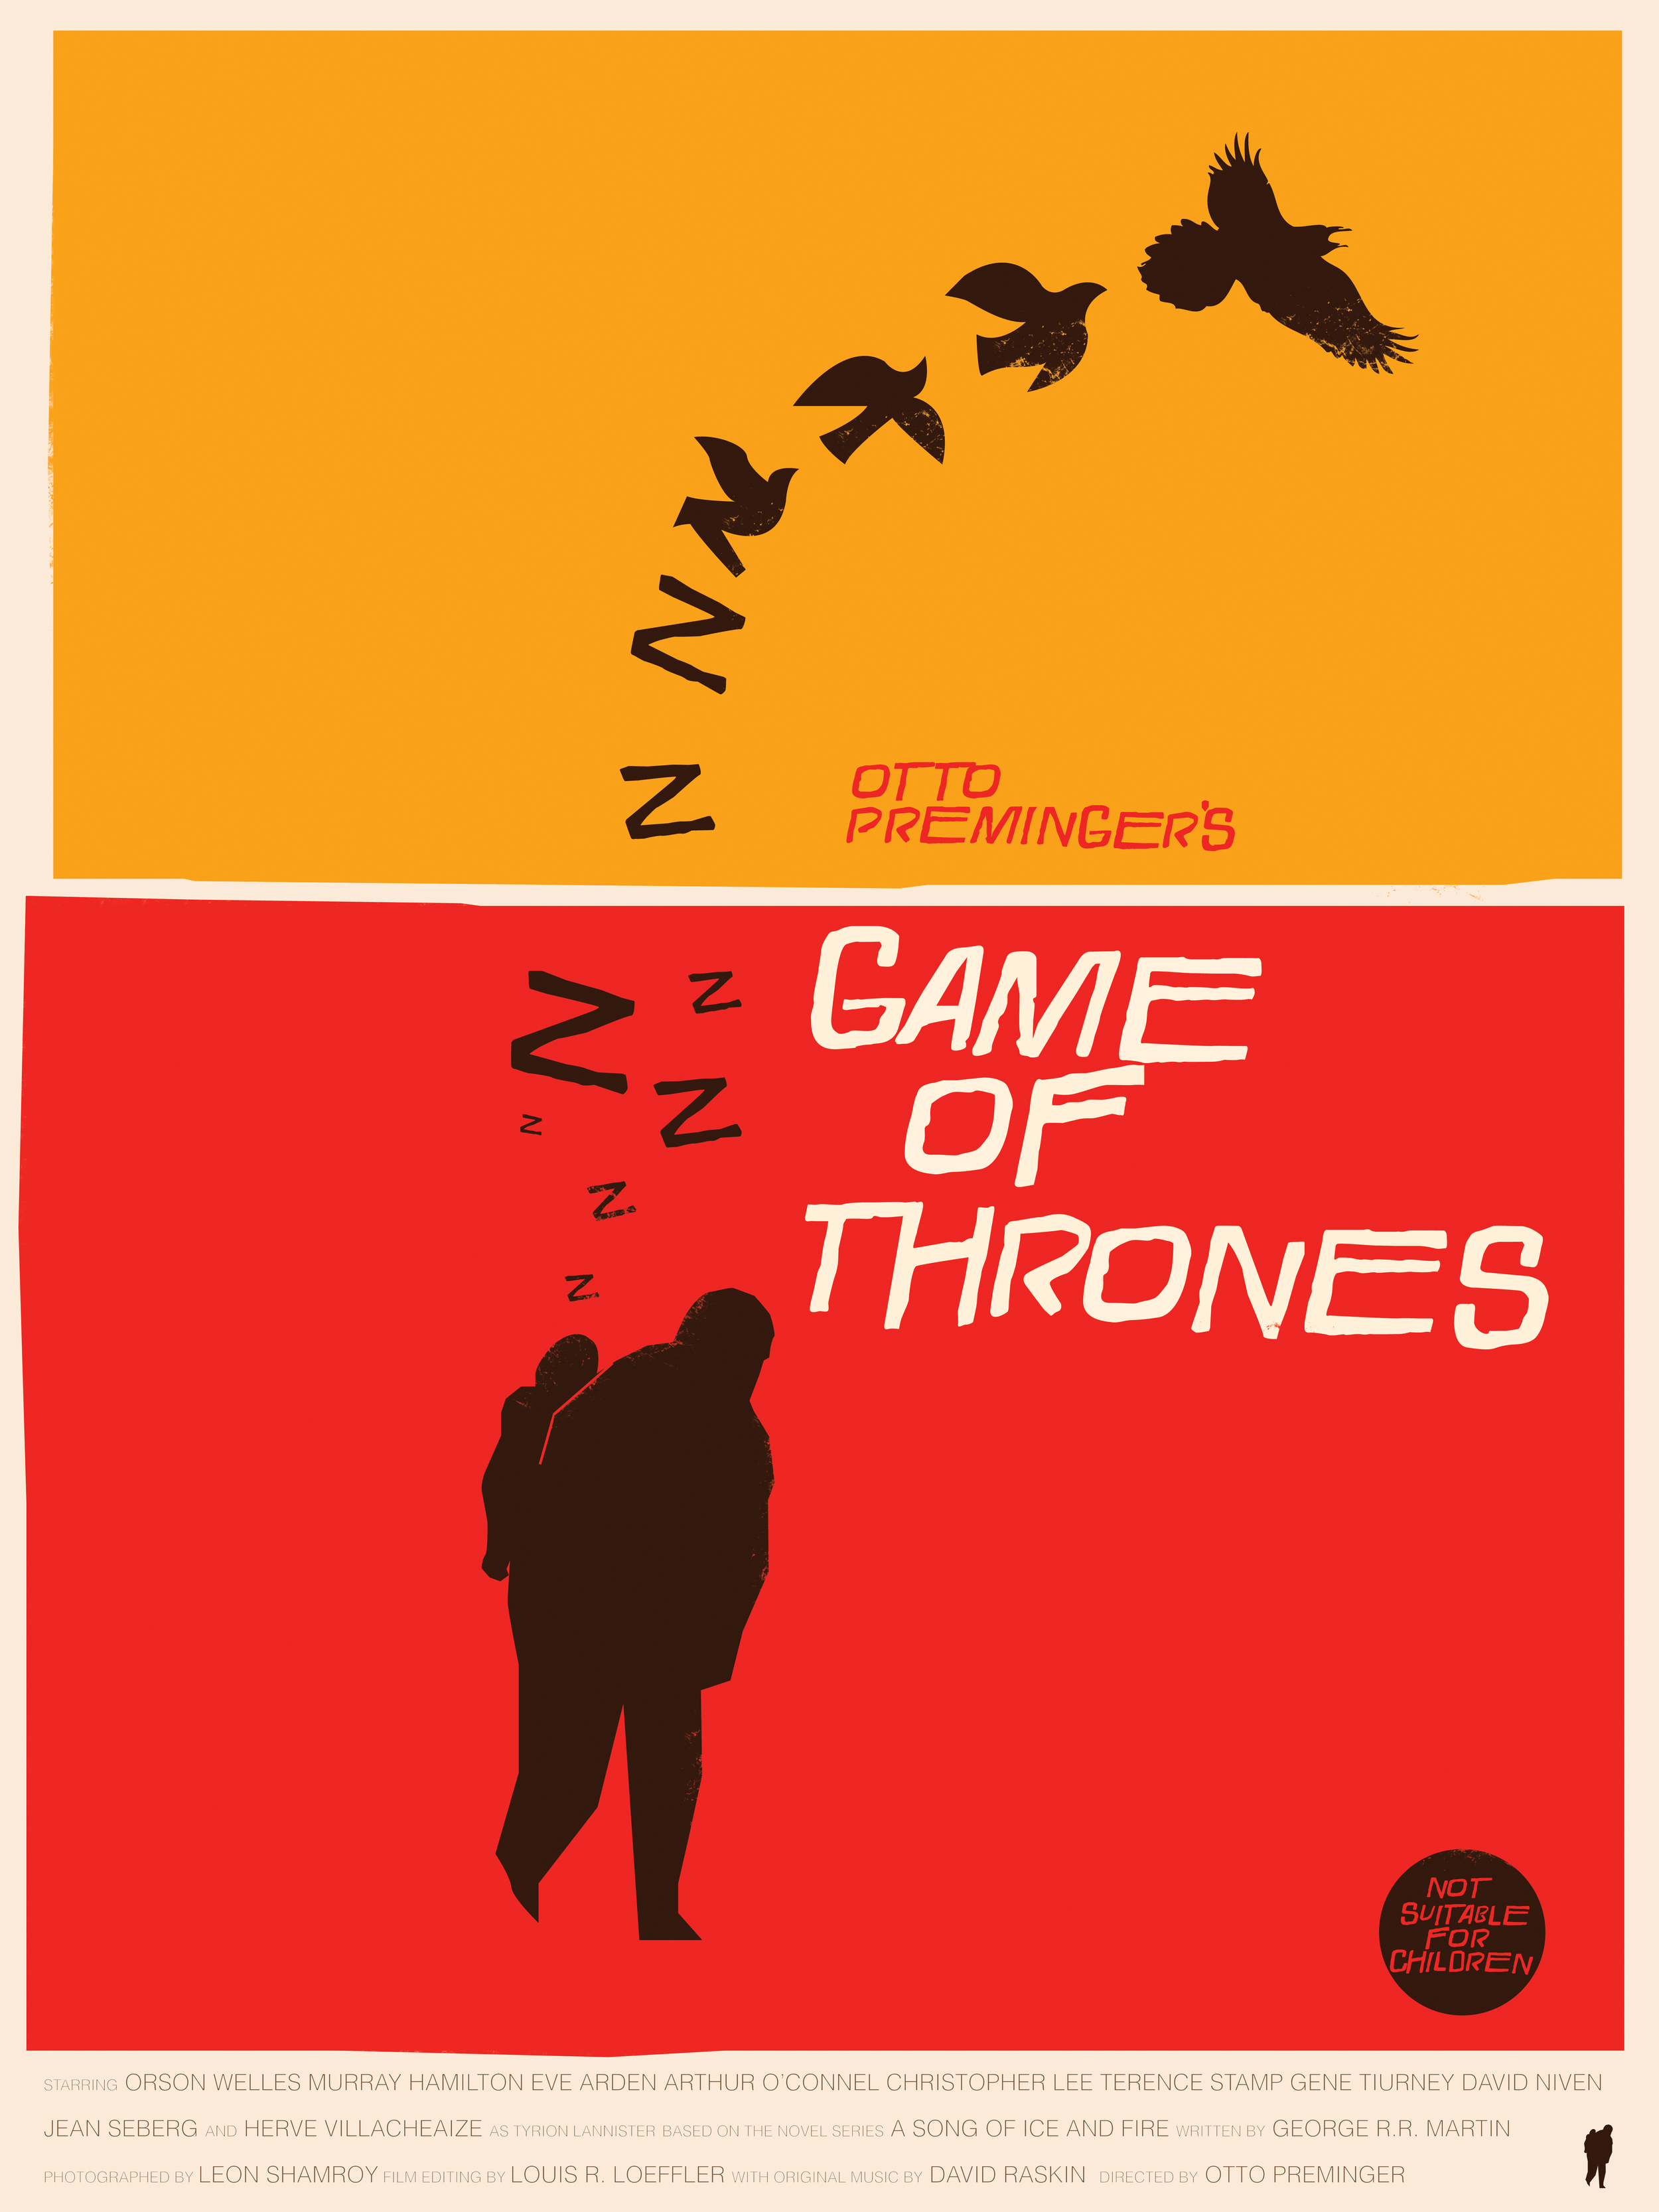 """The Little Lordof WInterfell   Saul Bass Tribute   18"""" by 24"""" Giclee Print on Archival Matter Paper   Signed & Numbered   Limited run of  only 35   $40.00"""